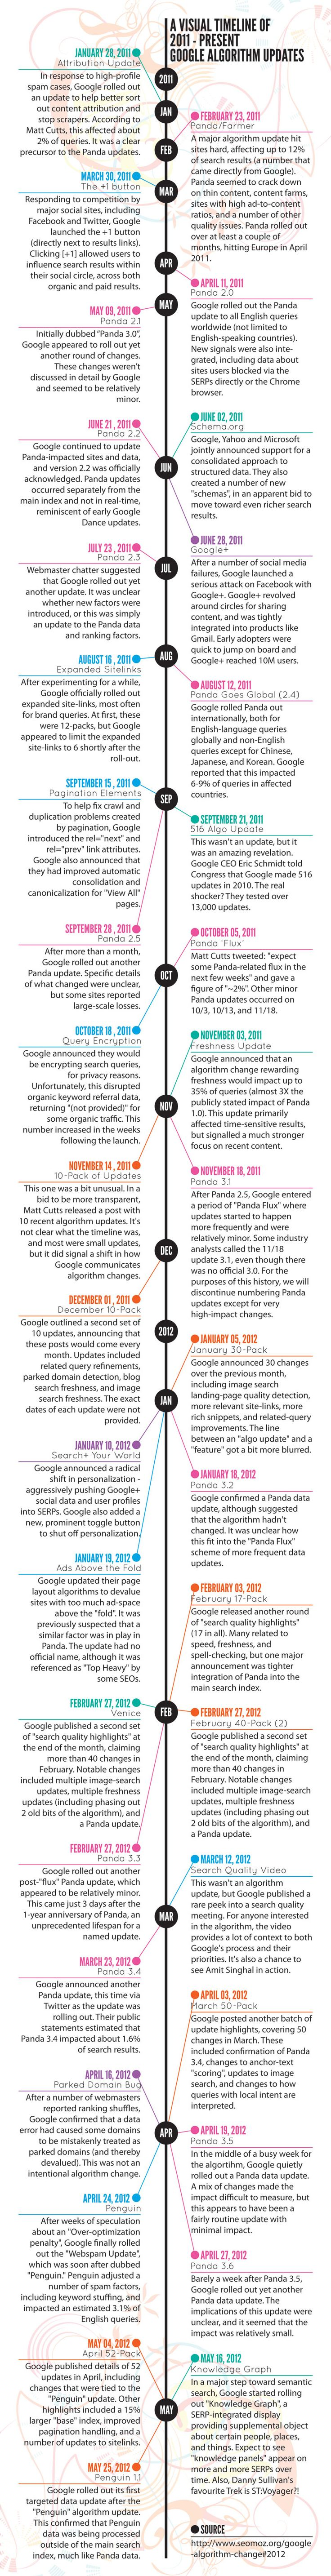 NEW: Feb 2011 to July 2011 ~ Visual Timeline Infographic of Google Algorithm Updates